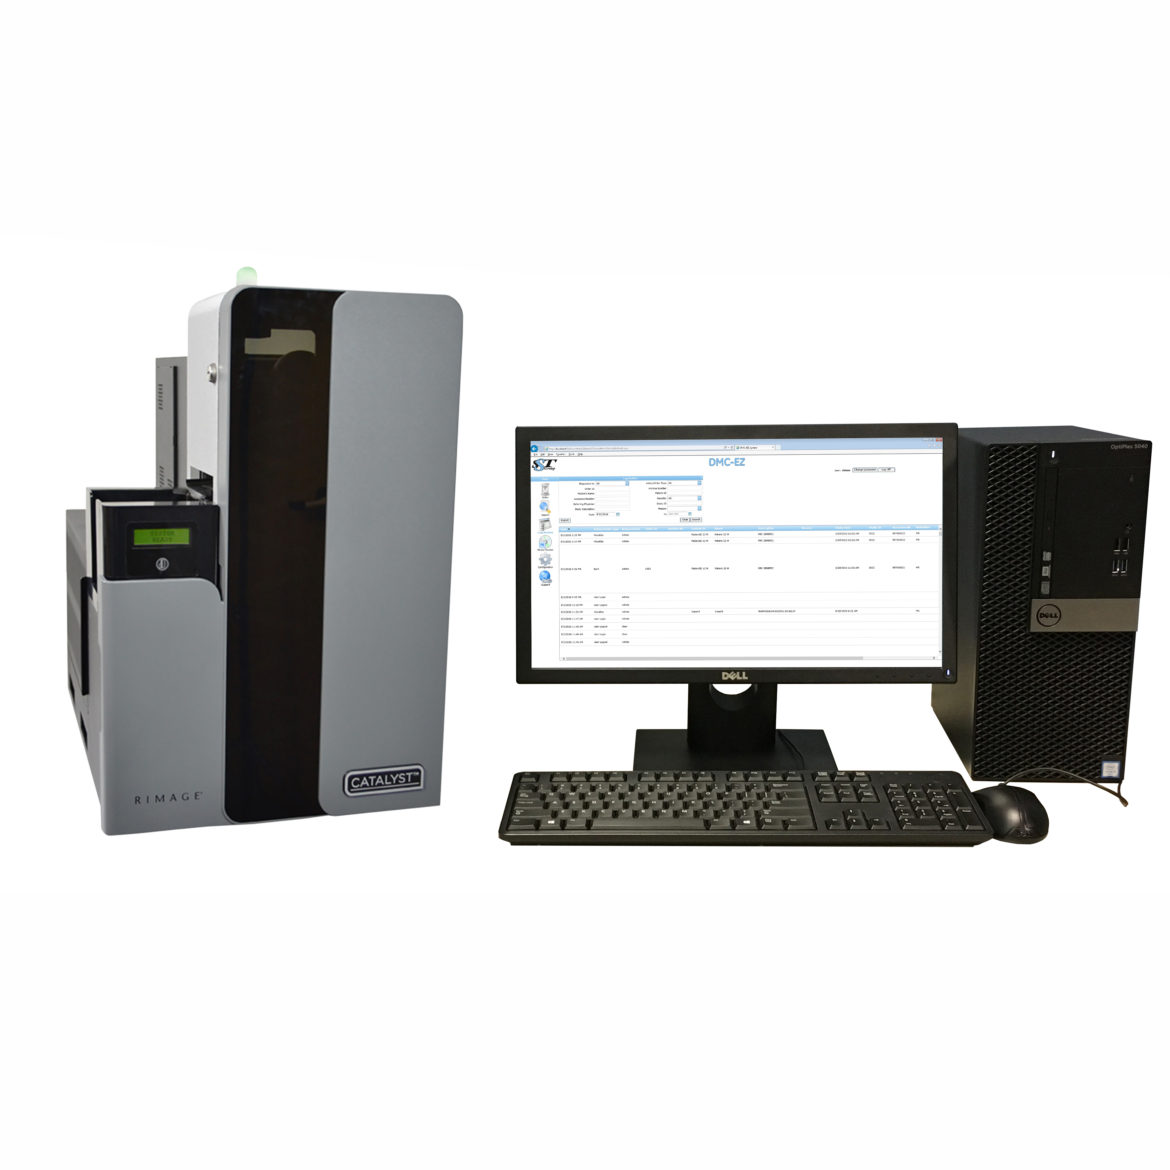 DMC-EZ 3600_monitor